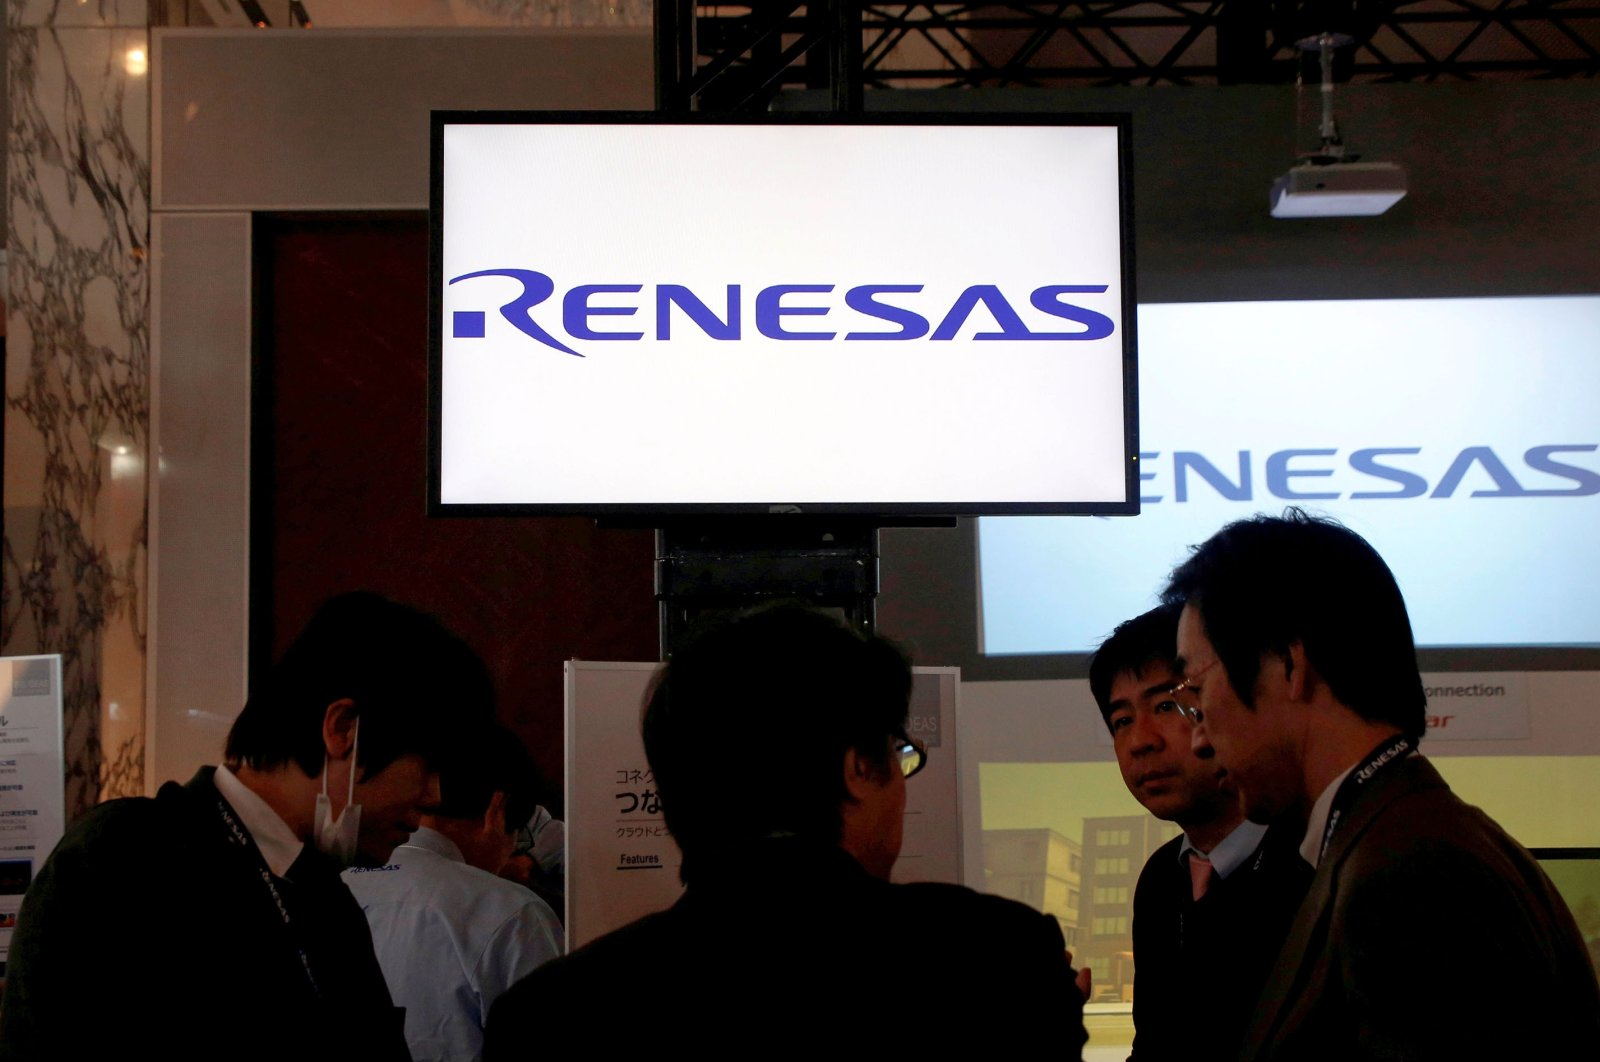 Renesas Electronics Corp.'s logos at the company's conference in Tokyo, Japan, April 11, 2017. (Reuters Photo)